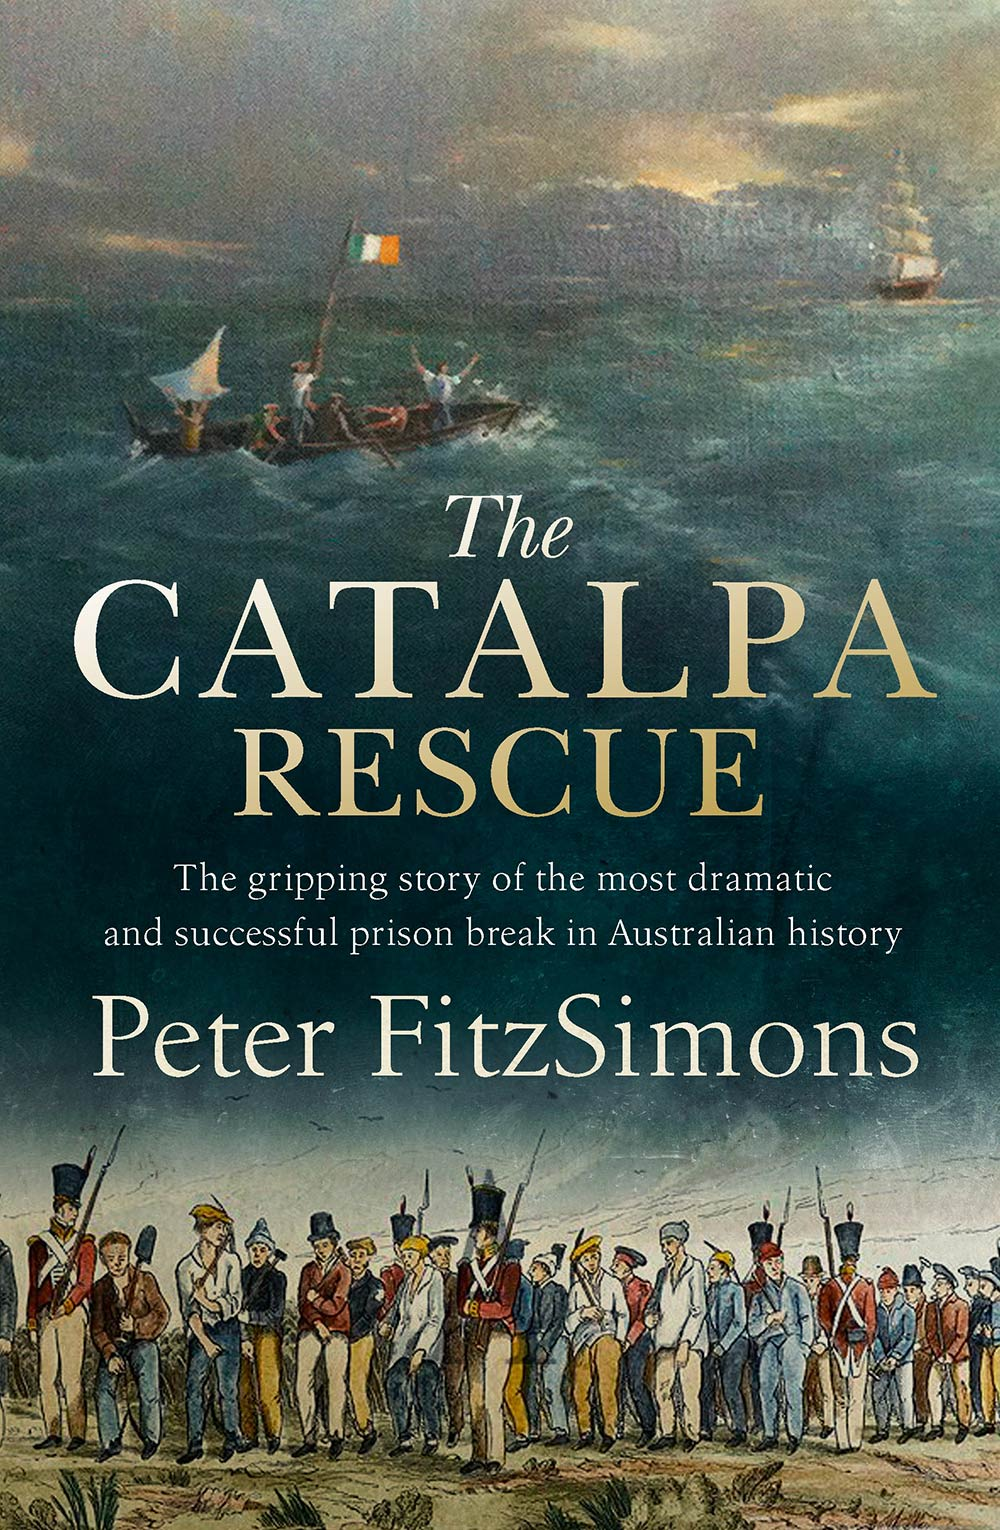 Peter FitzSimons' new book bring the story of The Catalpa Rescue to a new audience.